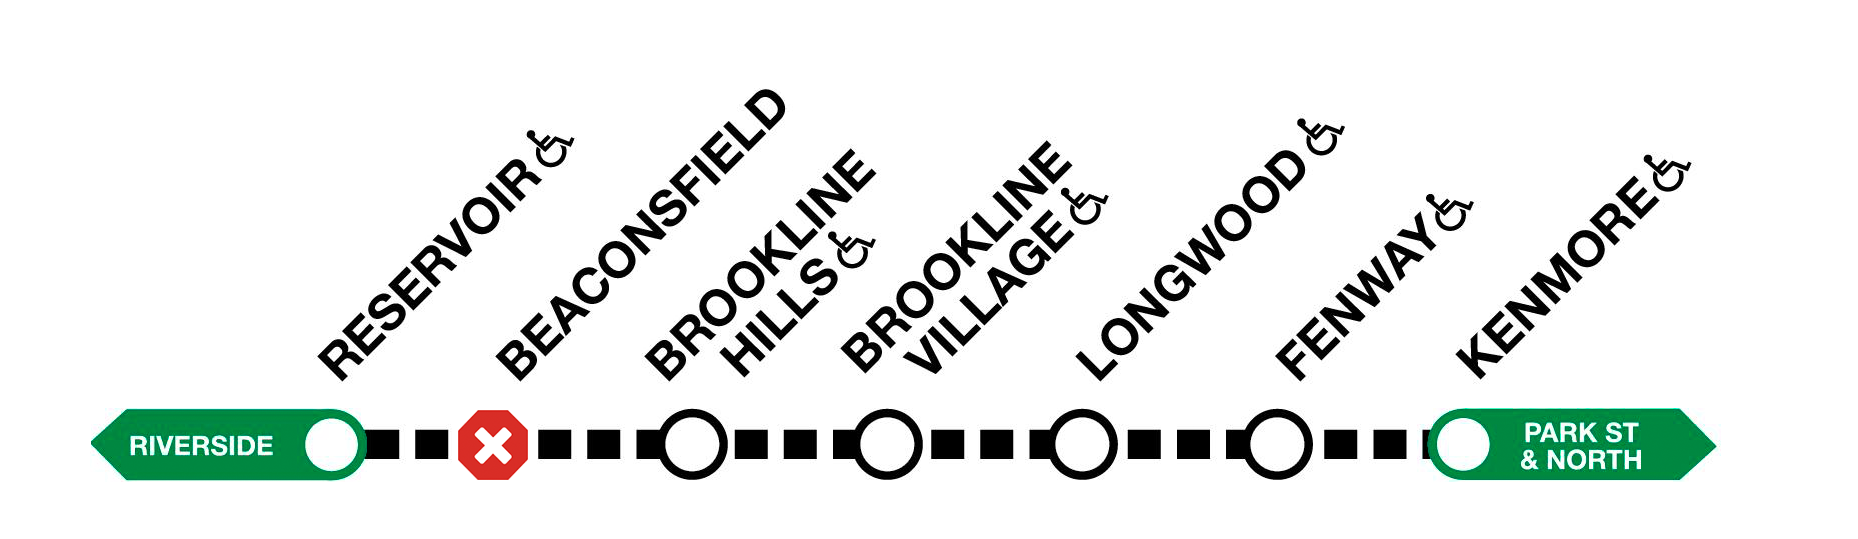 http://live-mbta.pantheonsite.io/sites/default/files/media/2019-01/kenmore-reservoir-shuttle-map-cropped.jpg